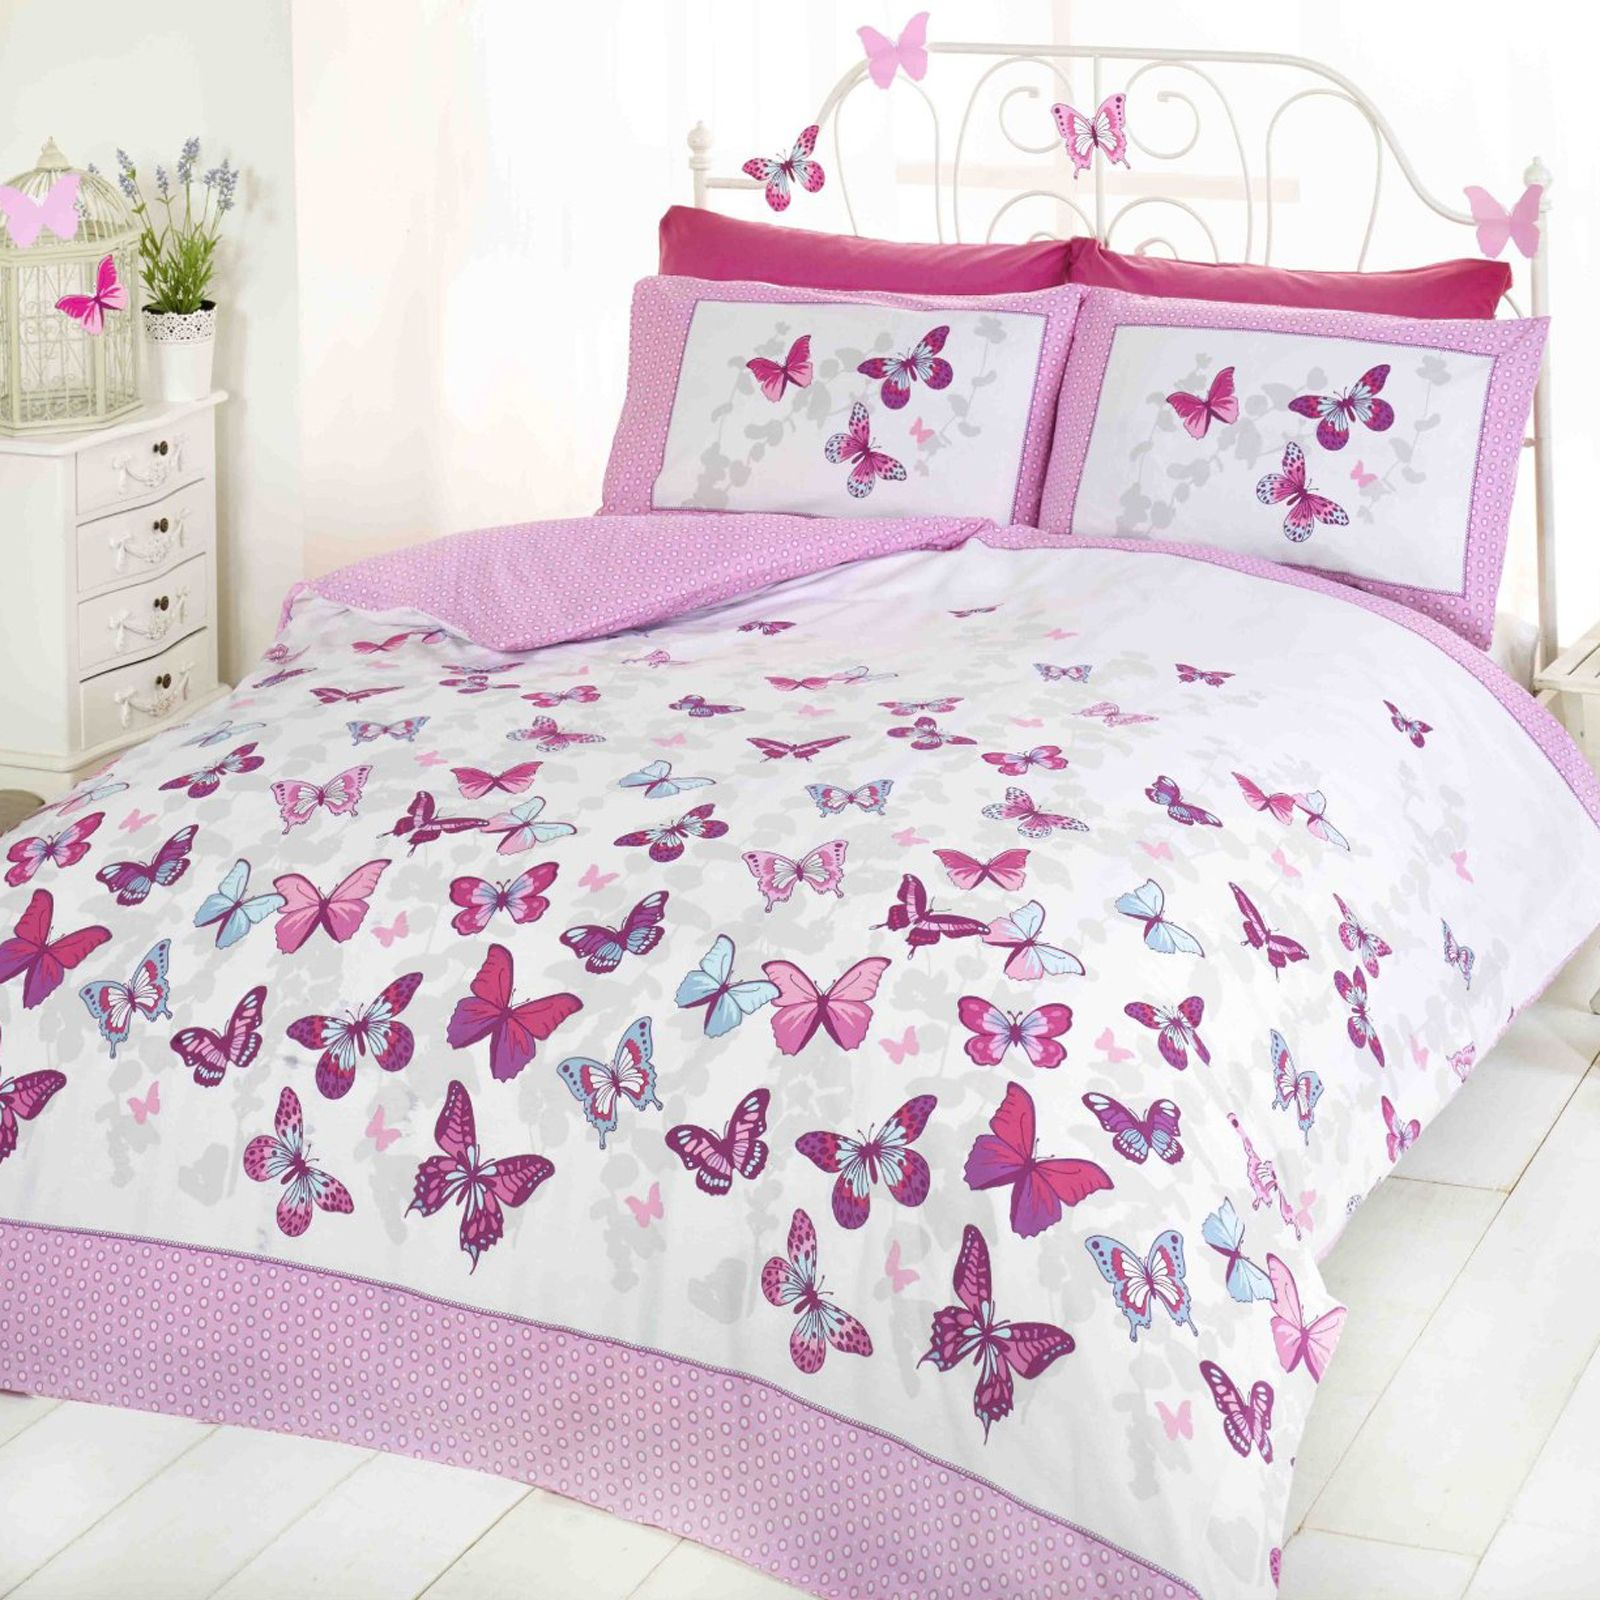 butterfly flutter duvet covers girls bedroom bedding various sizes ebay. Black Bedroom Furniture Sets. Home Design Ideas